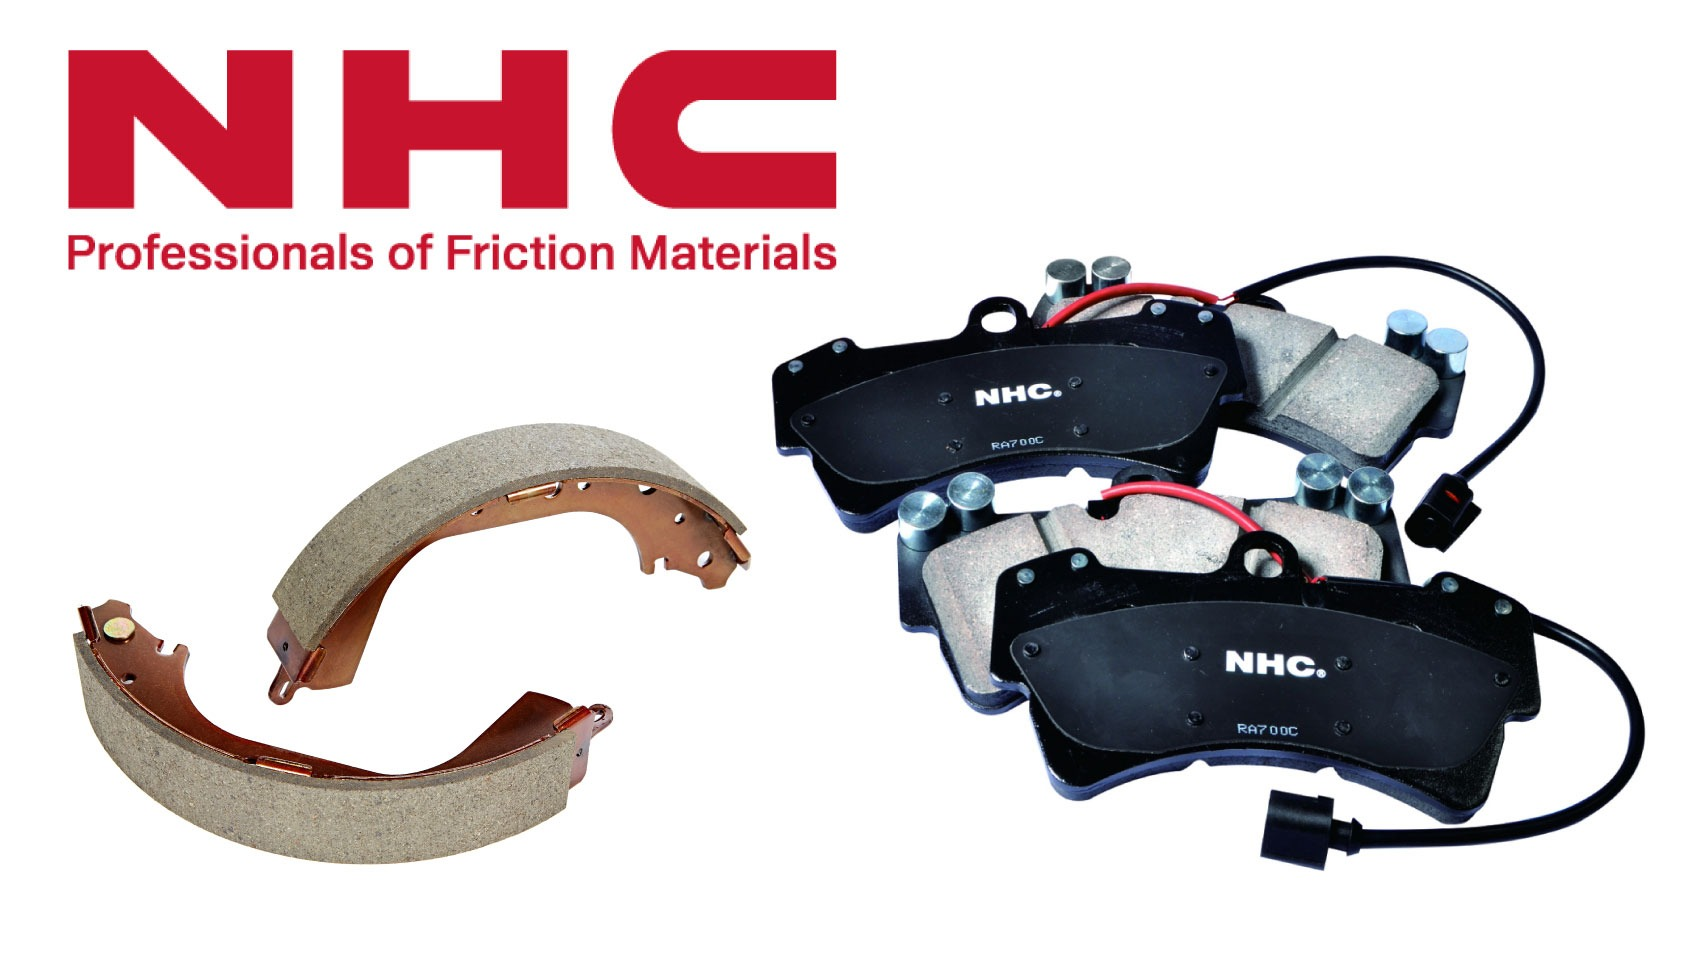 Drum Brake Shoes, Disc Brake Pad for Brake Systems made by NAN HOANG TRAFFIC INSTRUMENT CO., LTD. 南晃交通器材工業股份有限公司 – MatchSupplier.com